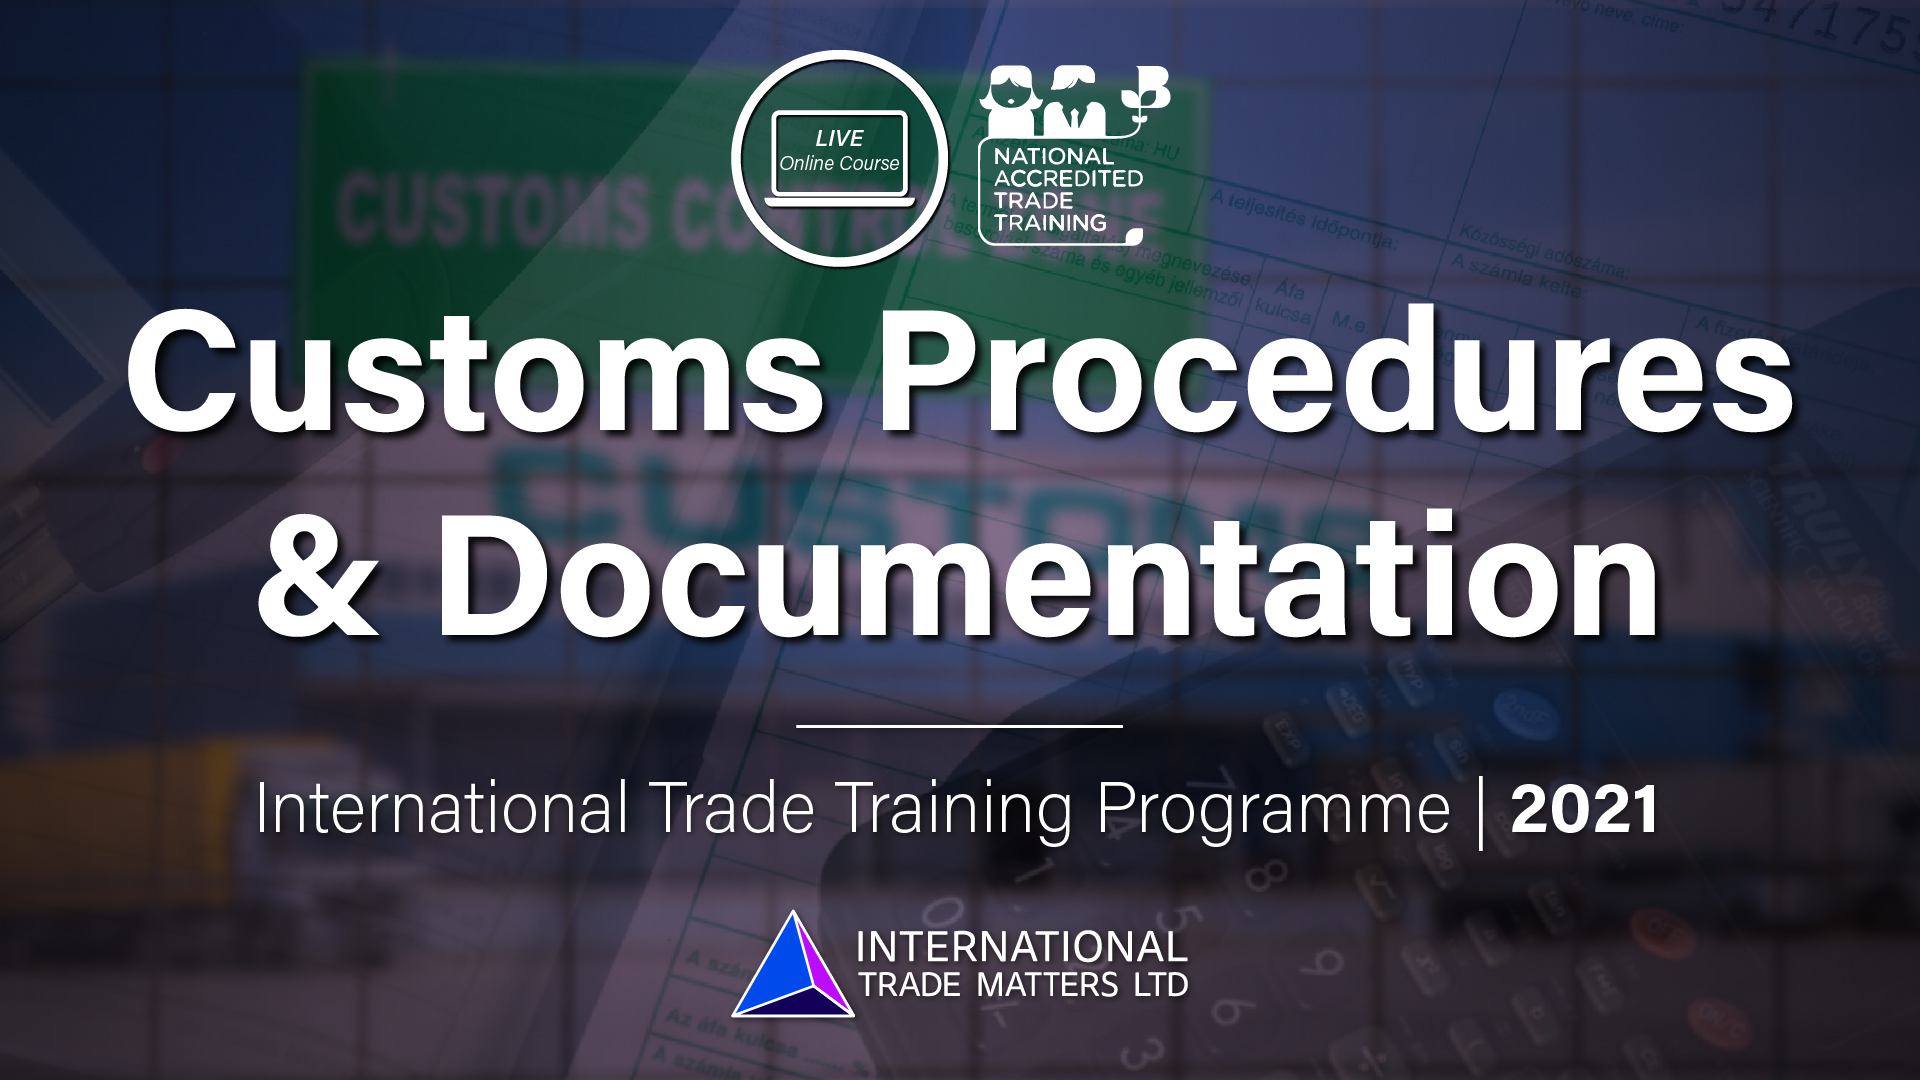 Customs Procedures and Documentation - An Online Course